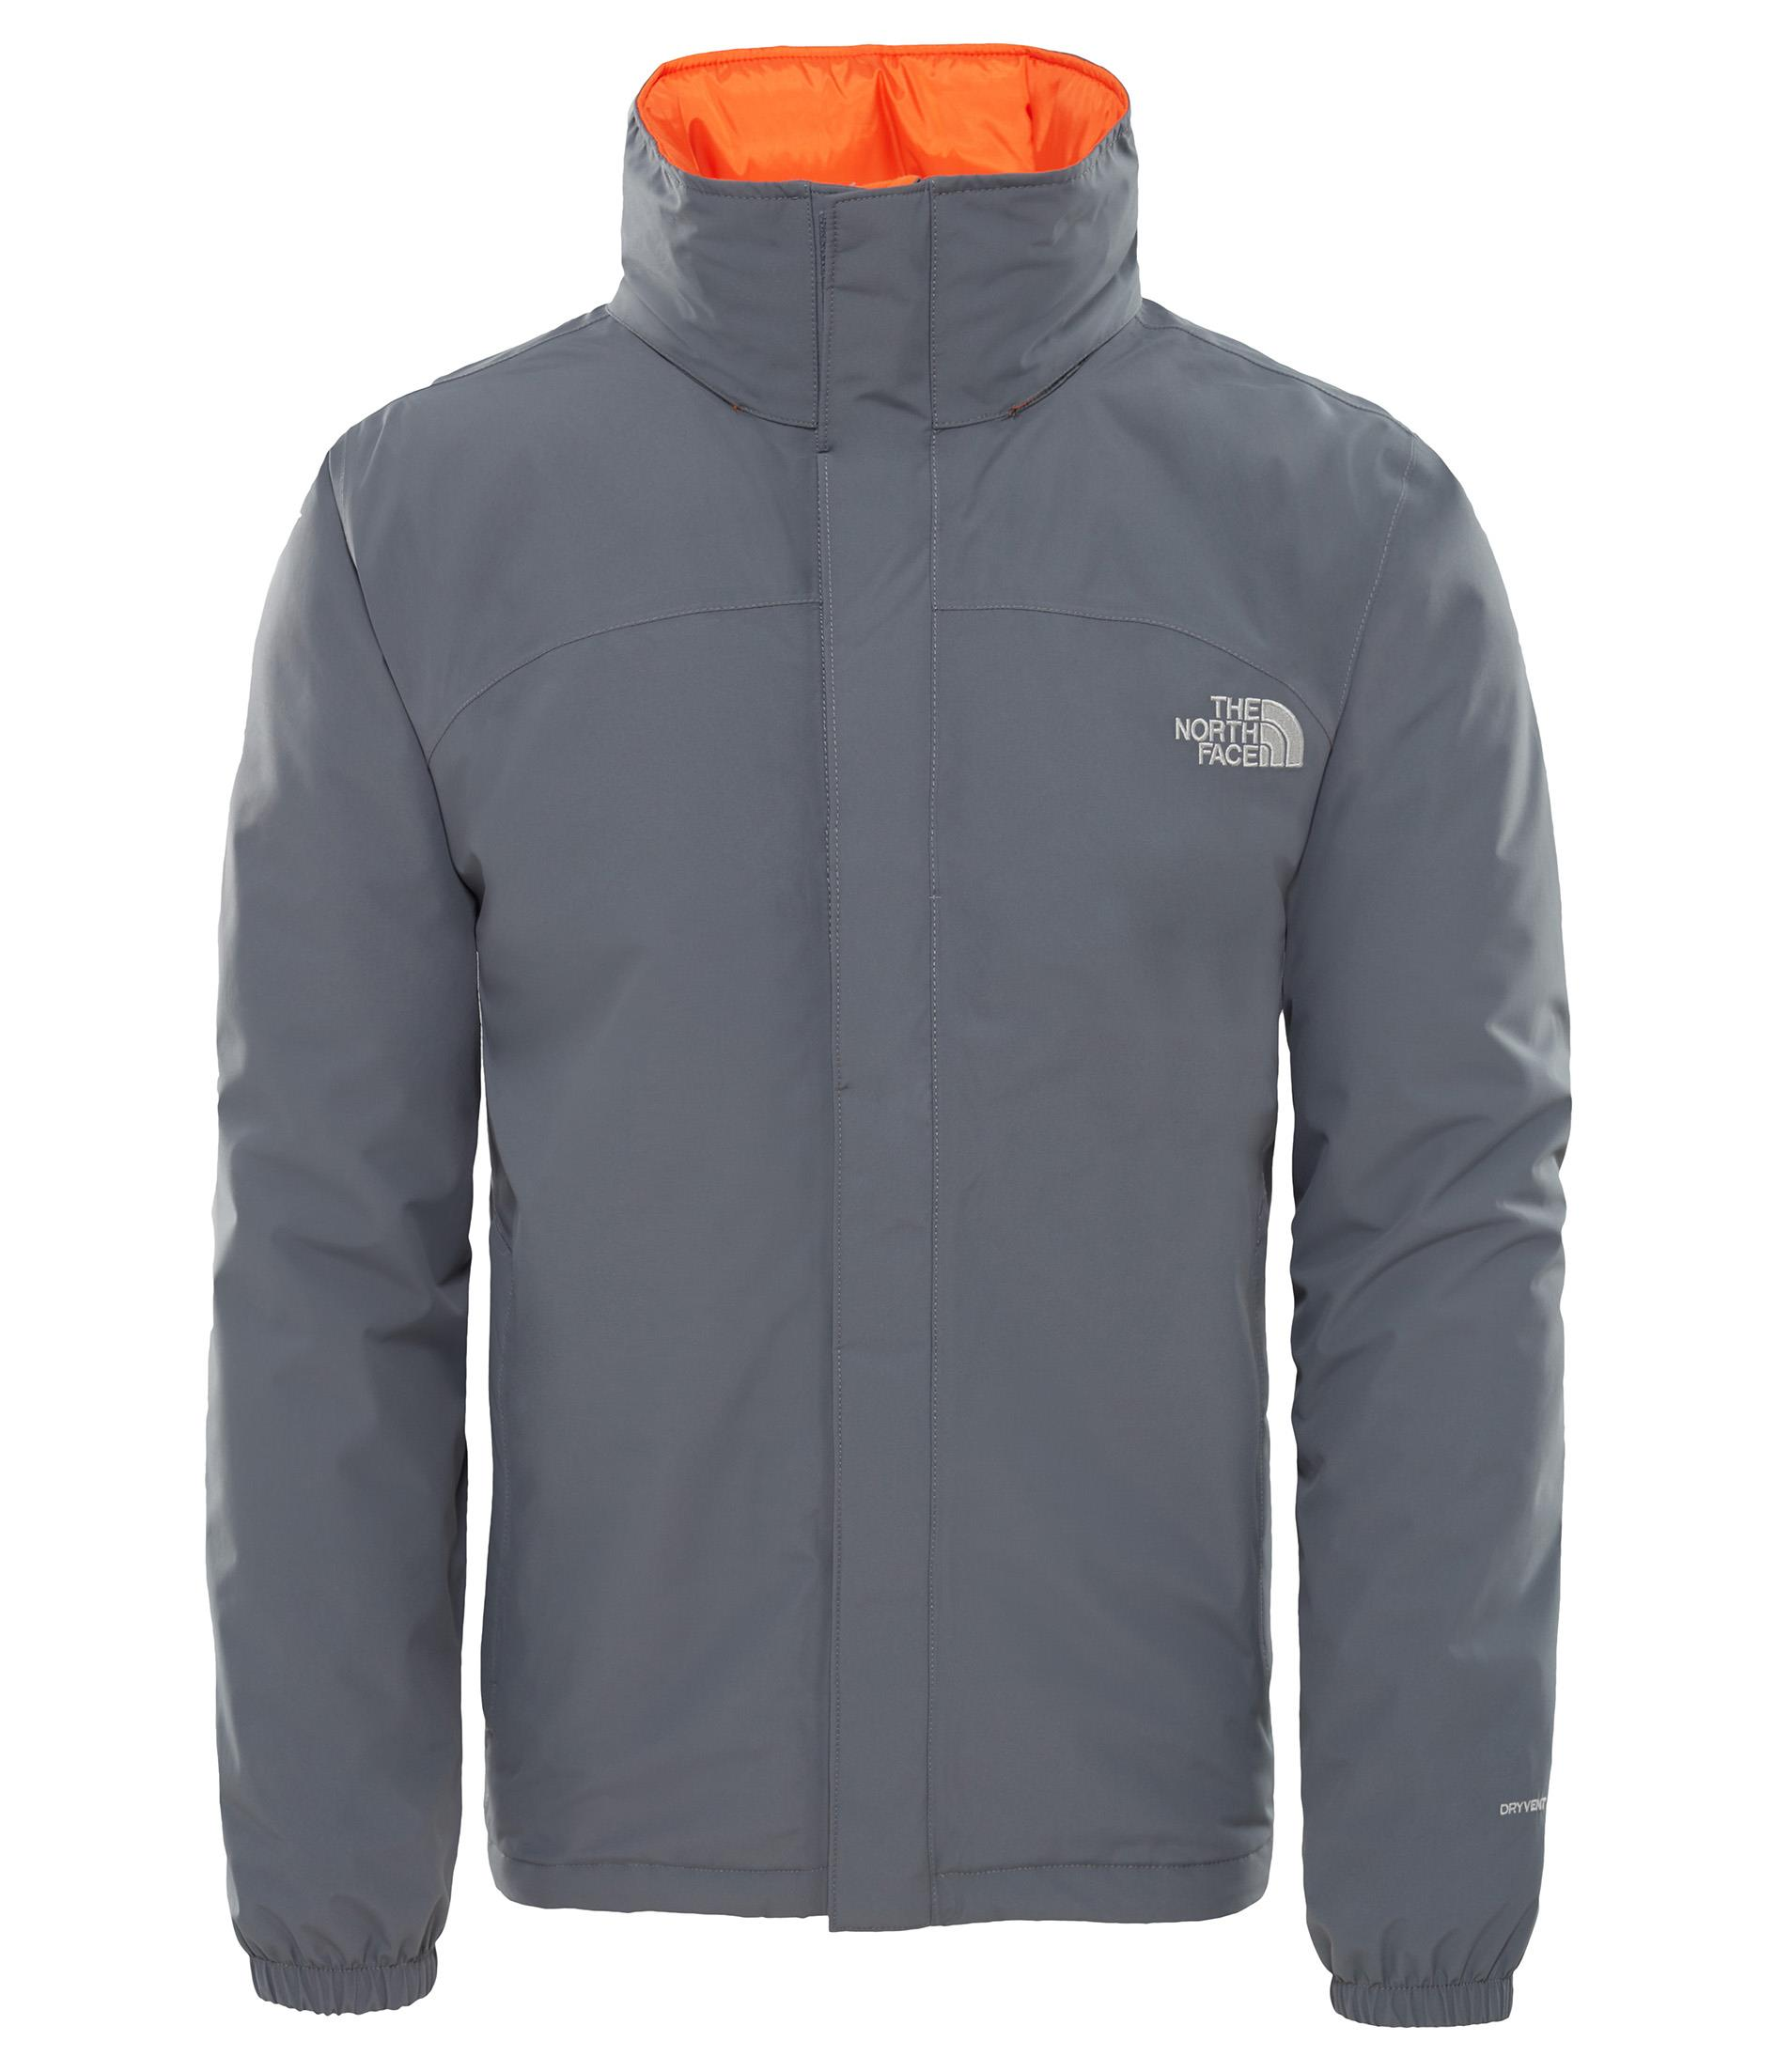 The North Face Erkek Resolve Ins Ceket T0A14Y174